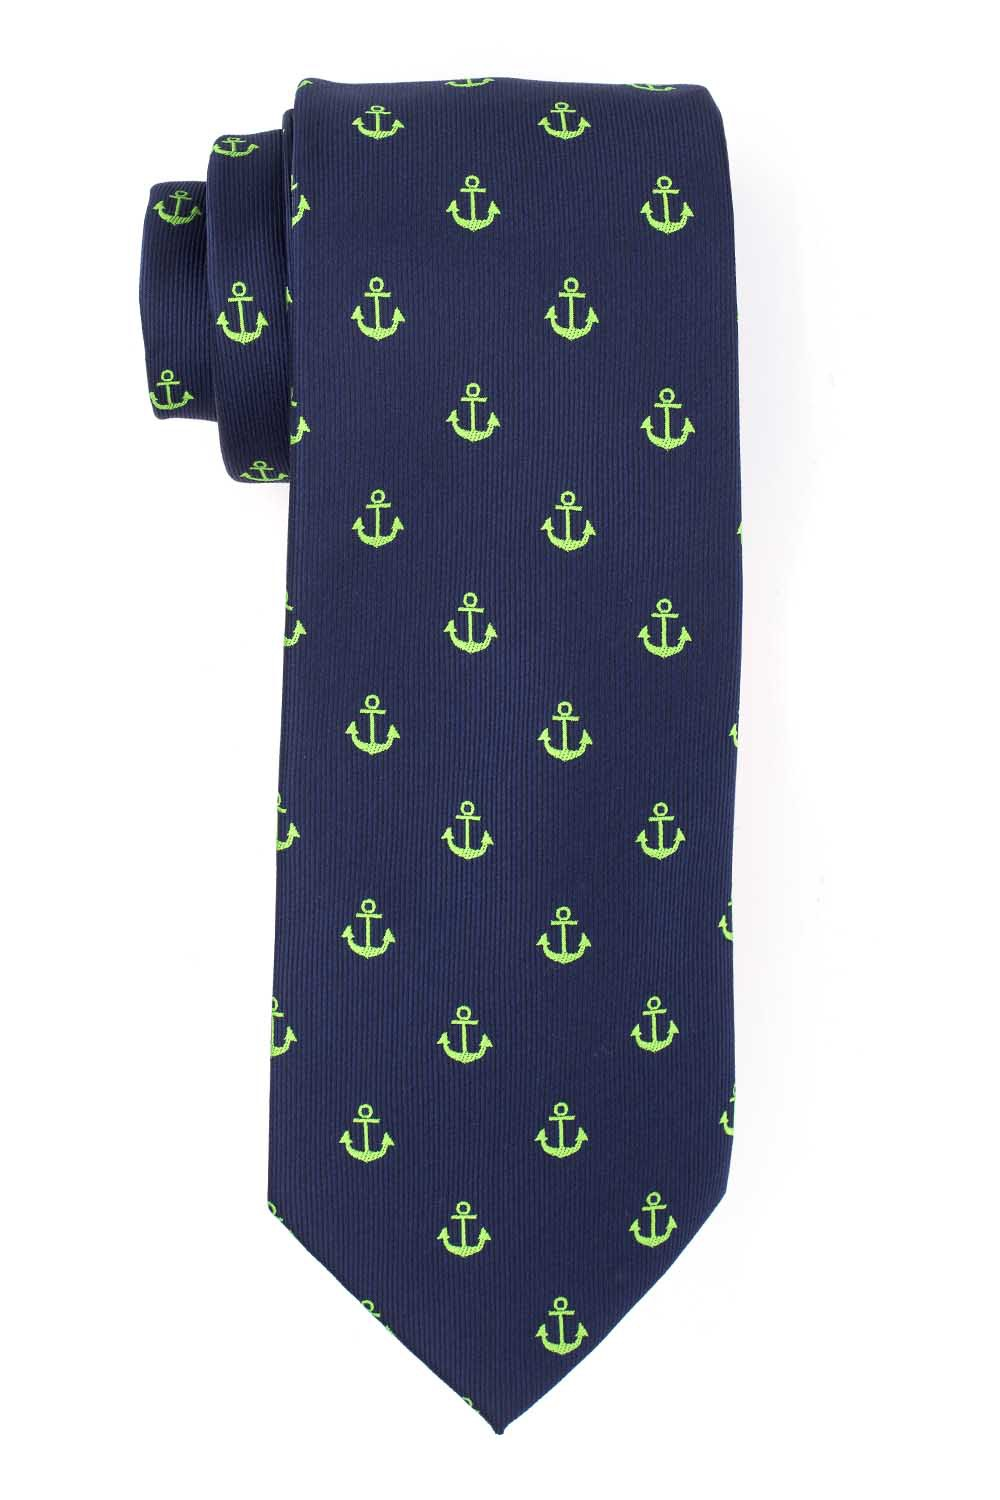 Blue with Green Anchor Microfiber Necktie